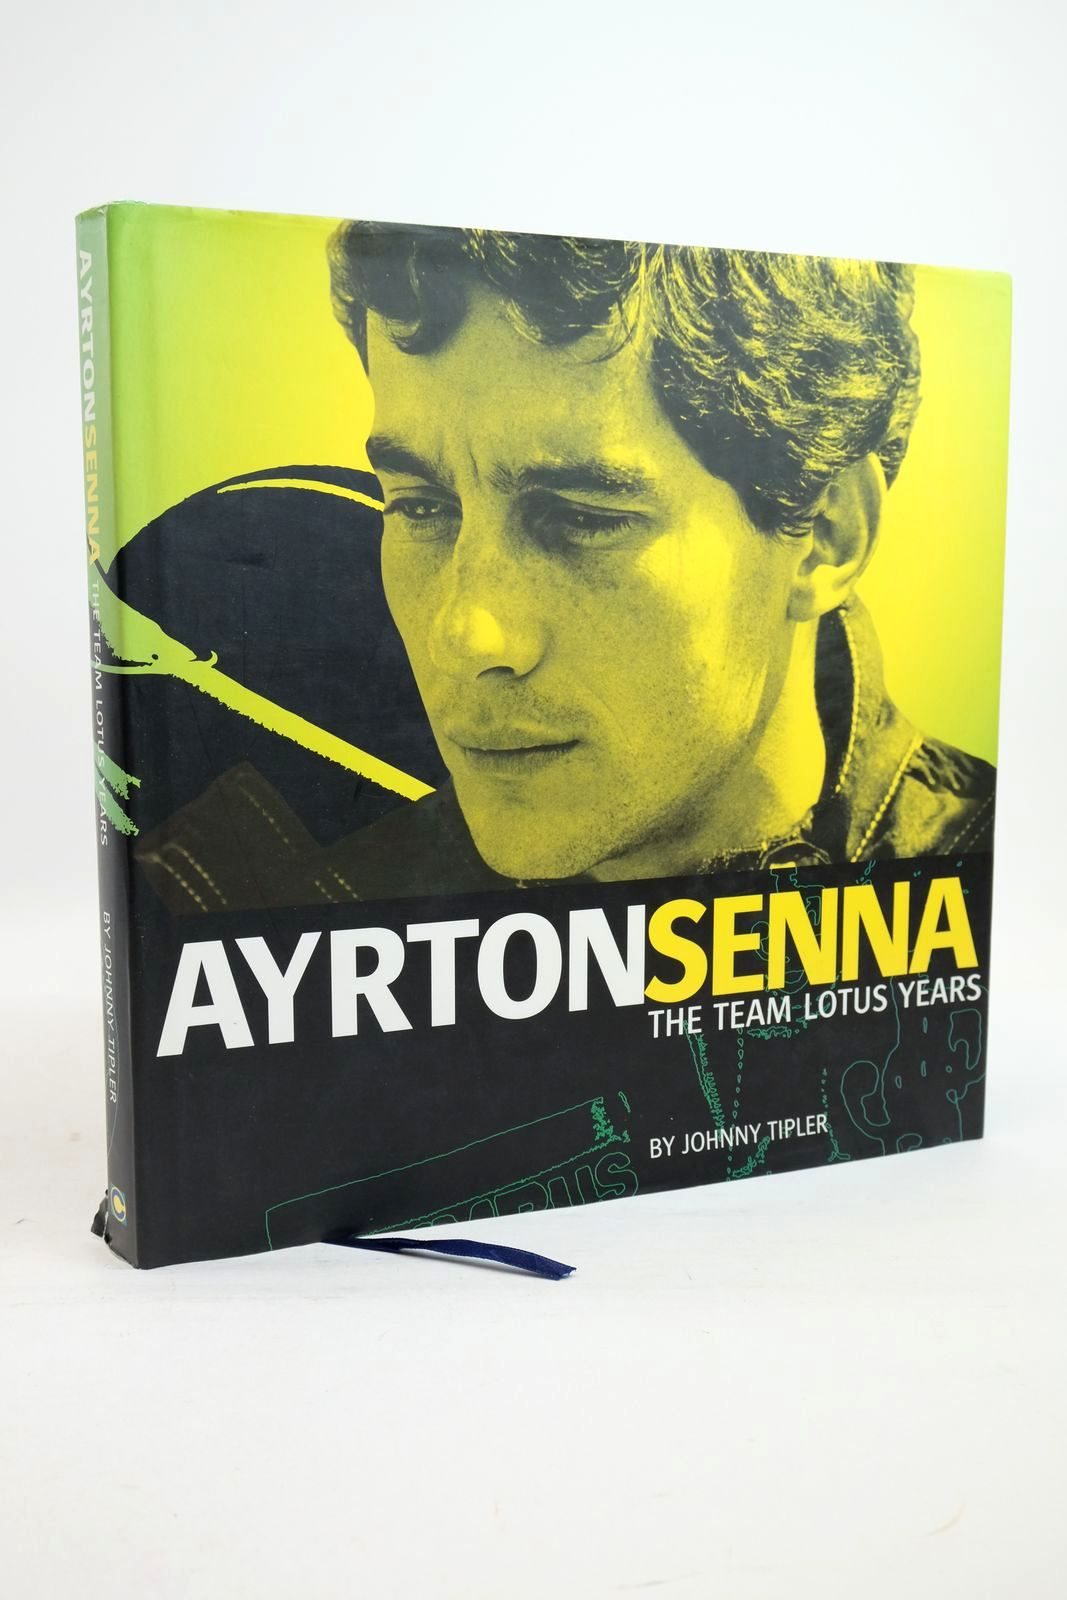 Photo of AYRTON SENNA THE TEAM LOTUS YEARS written by Tipler, Johnny published by Coterie Press Limited (STOCK CODE: 1321221)  for sale by Stella & Rose's Books